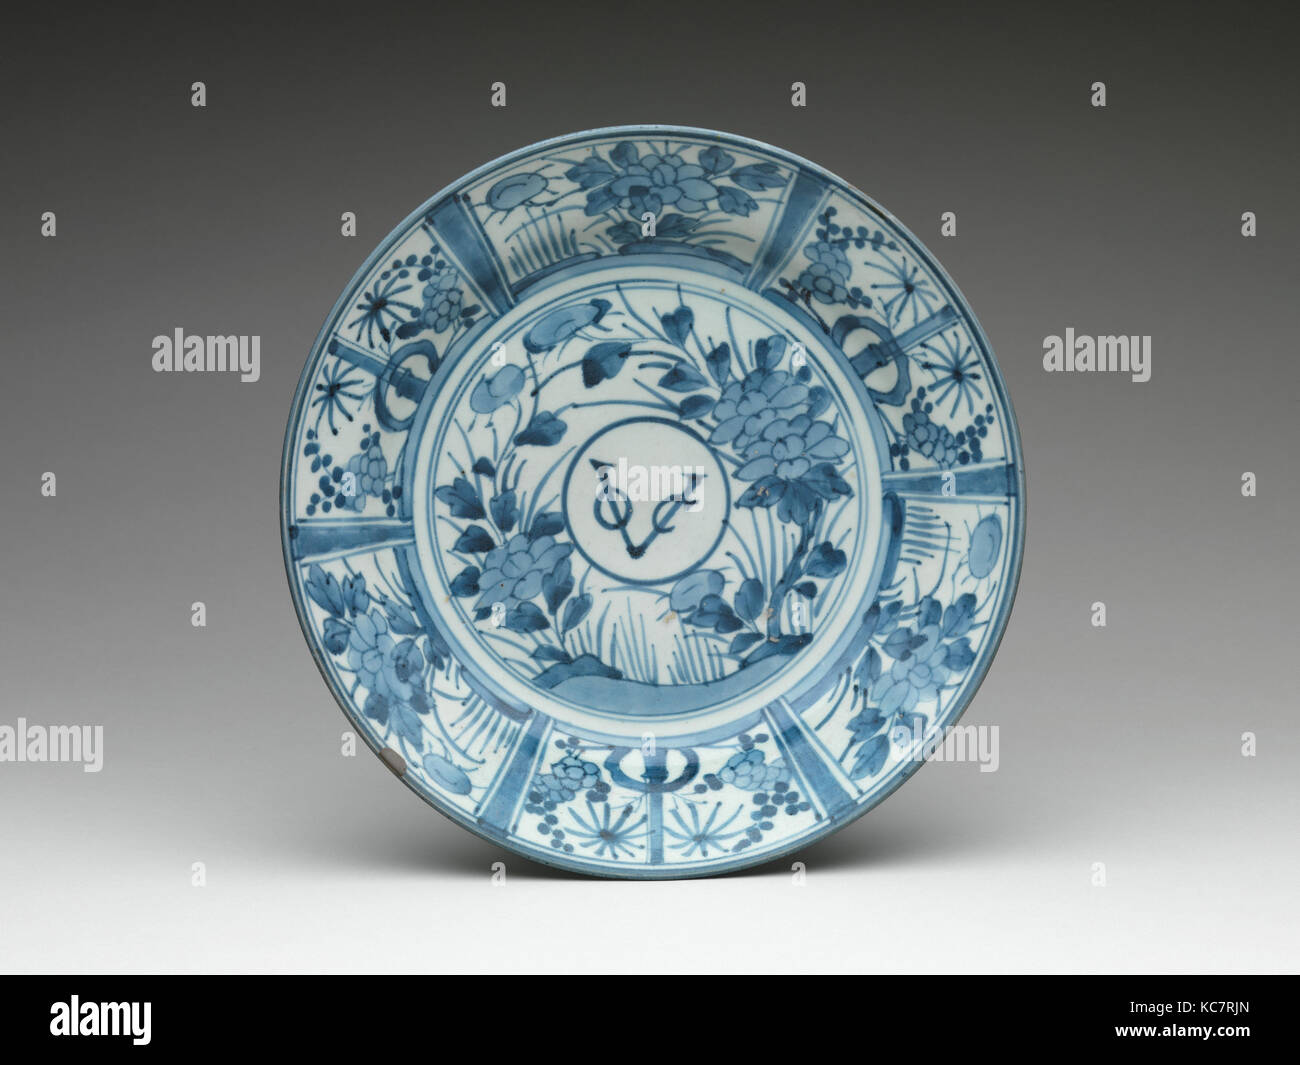 Plate with Monogram of the Dutch East India Company, ca. 1660 - Stock Image